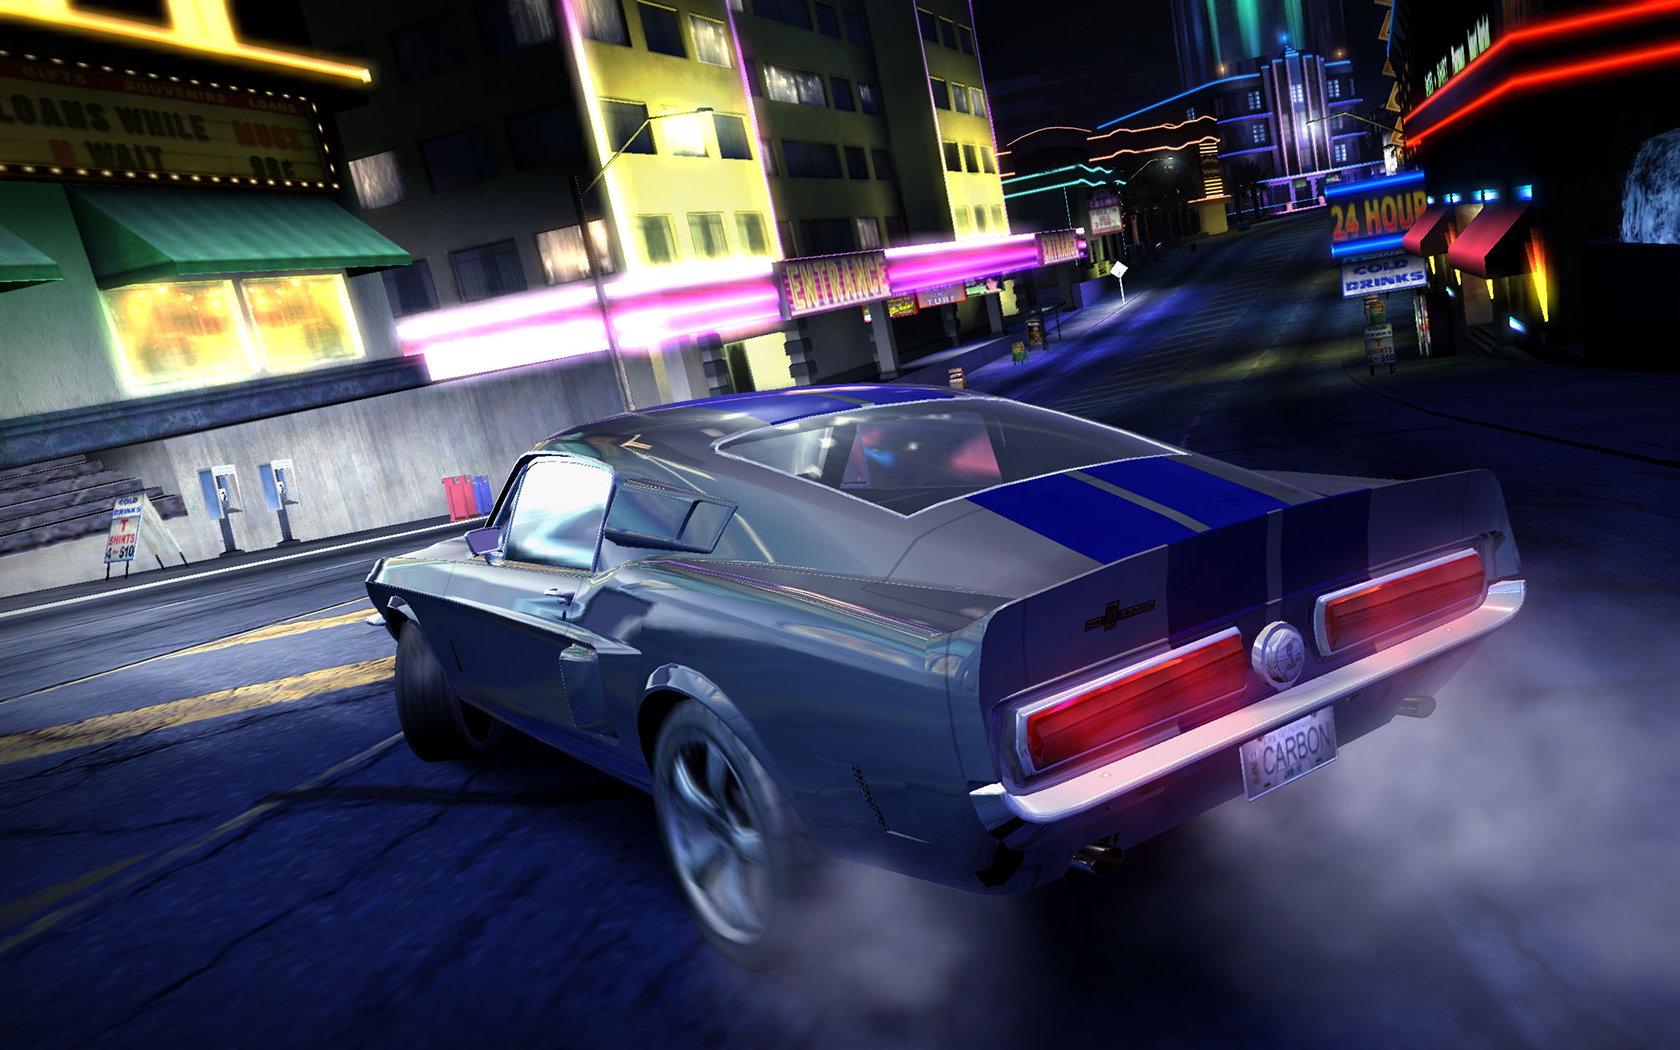 Mustang Need For Speed Wallpaper